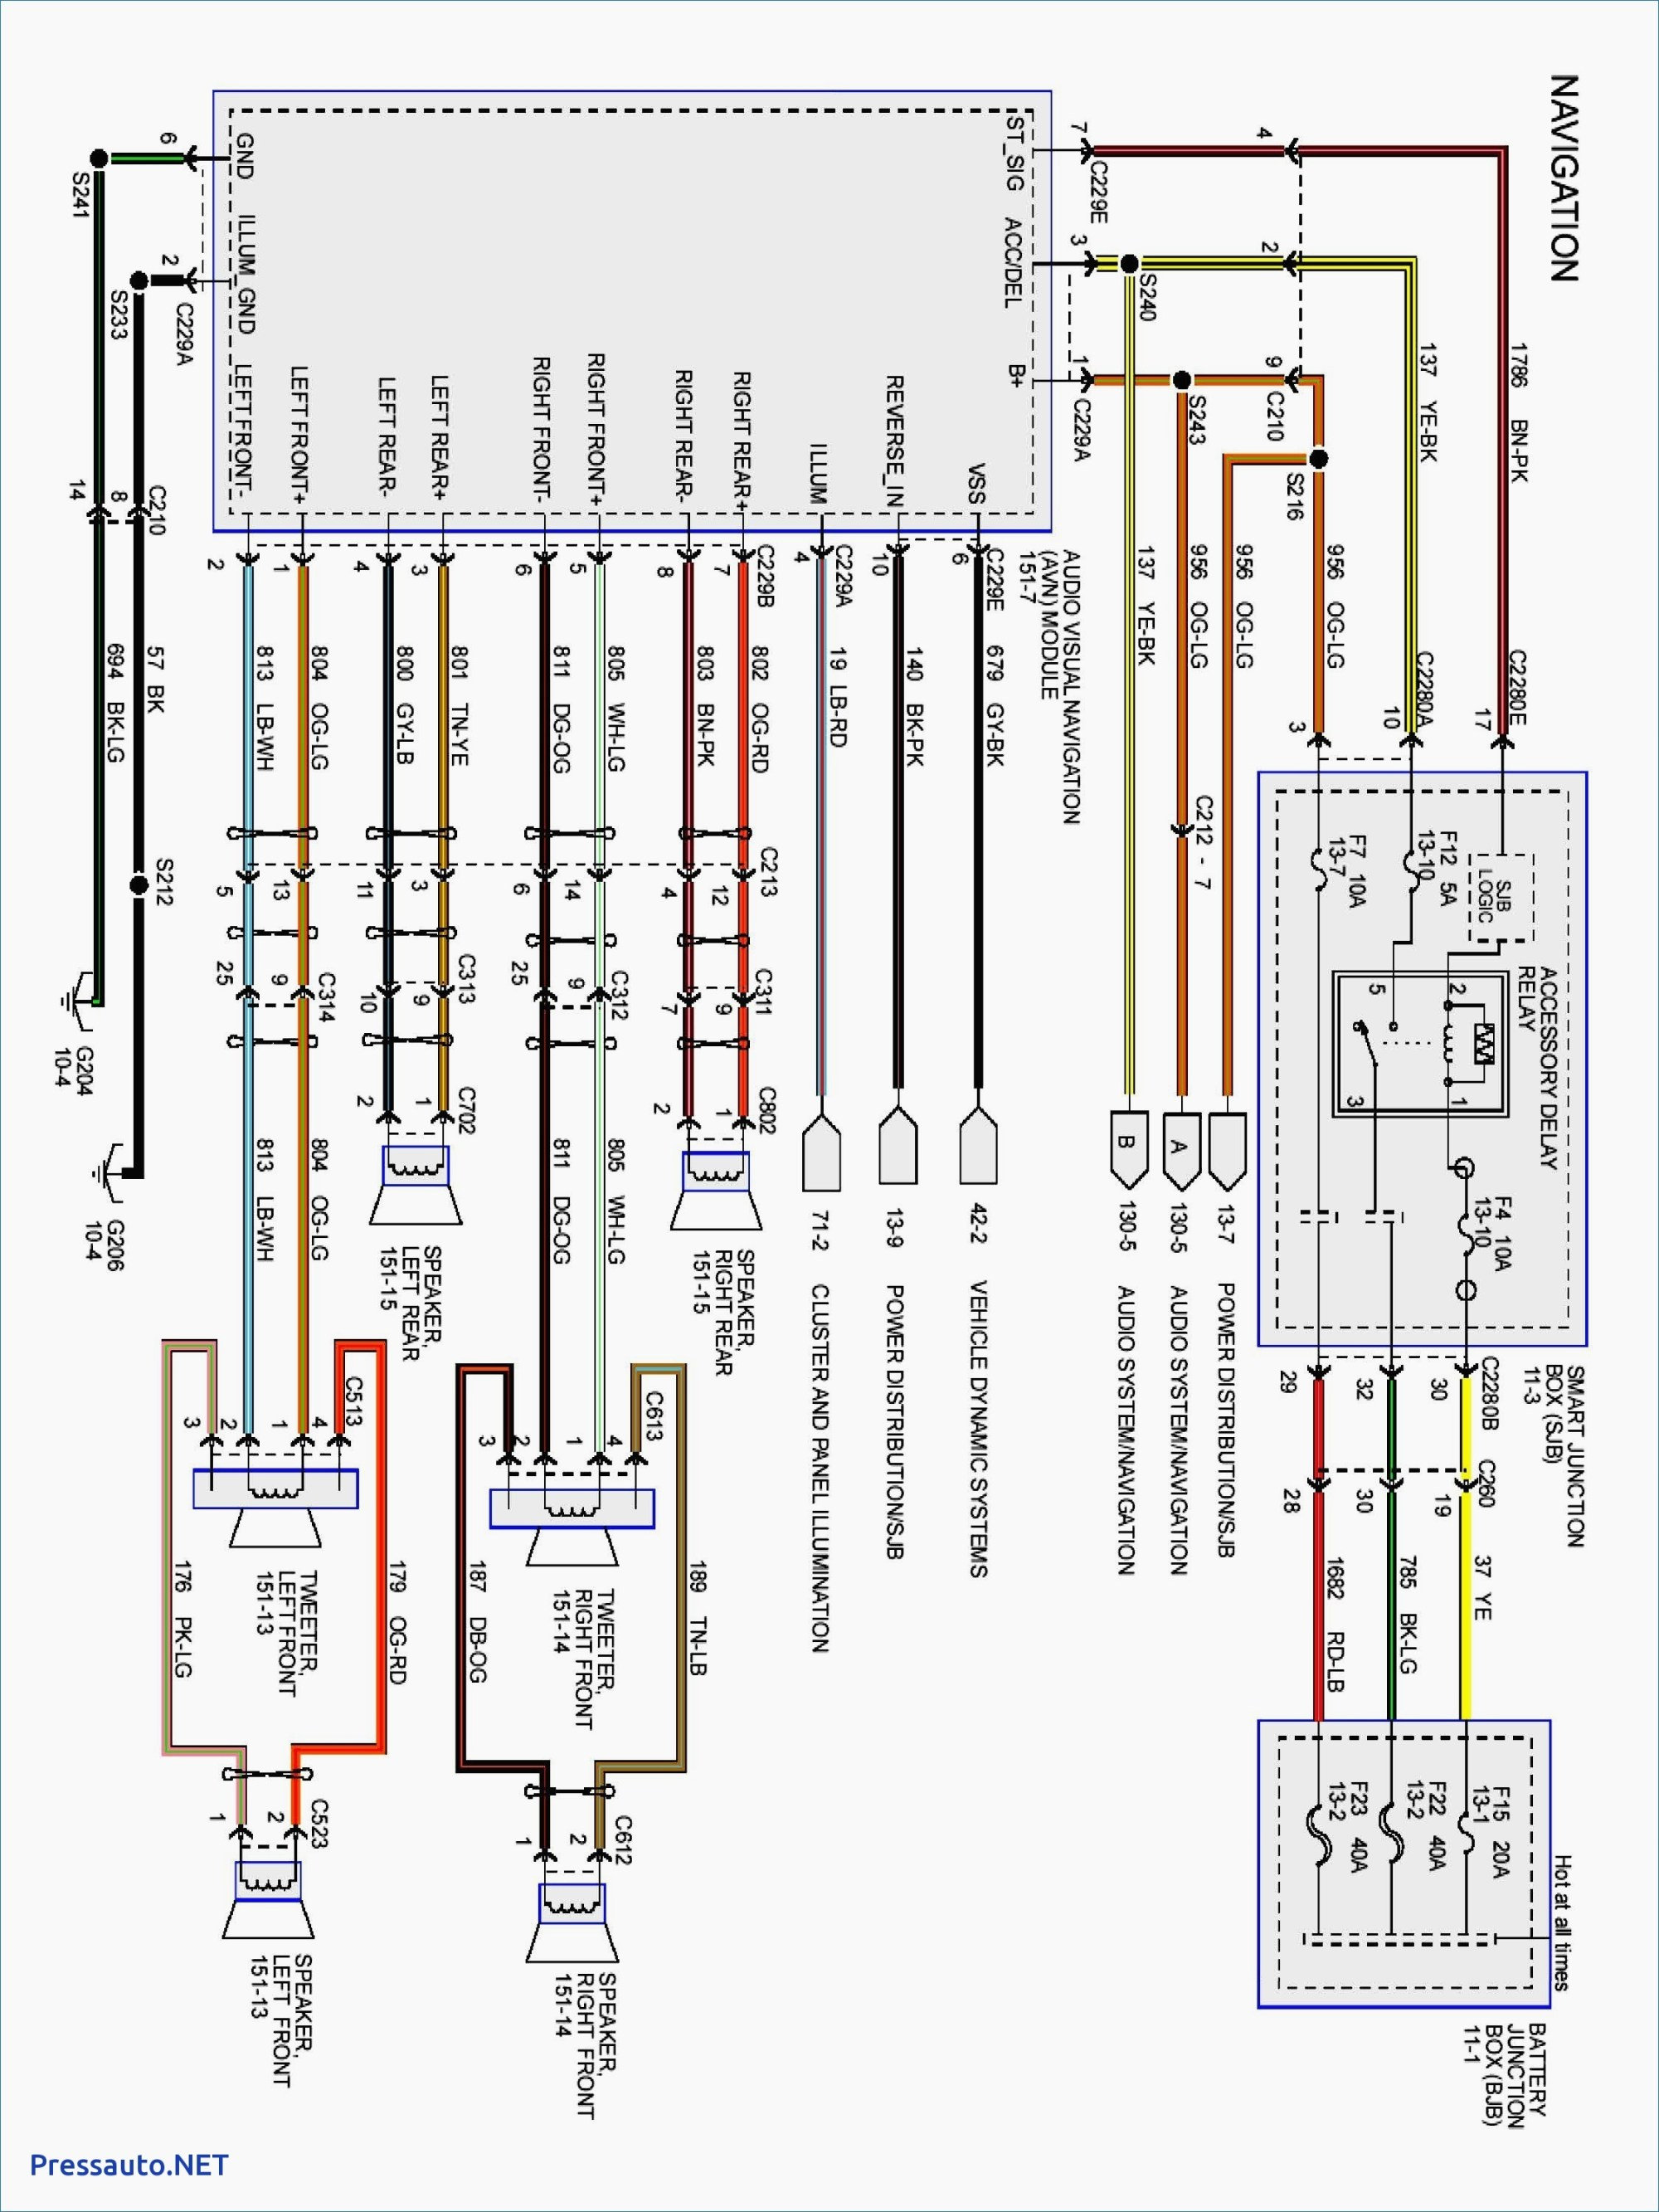 hight resolution of 2001 ford focus wiring diagram ford f350 wiring diagram 3 lenito of 2001 ford focus wiring